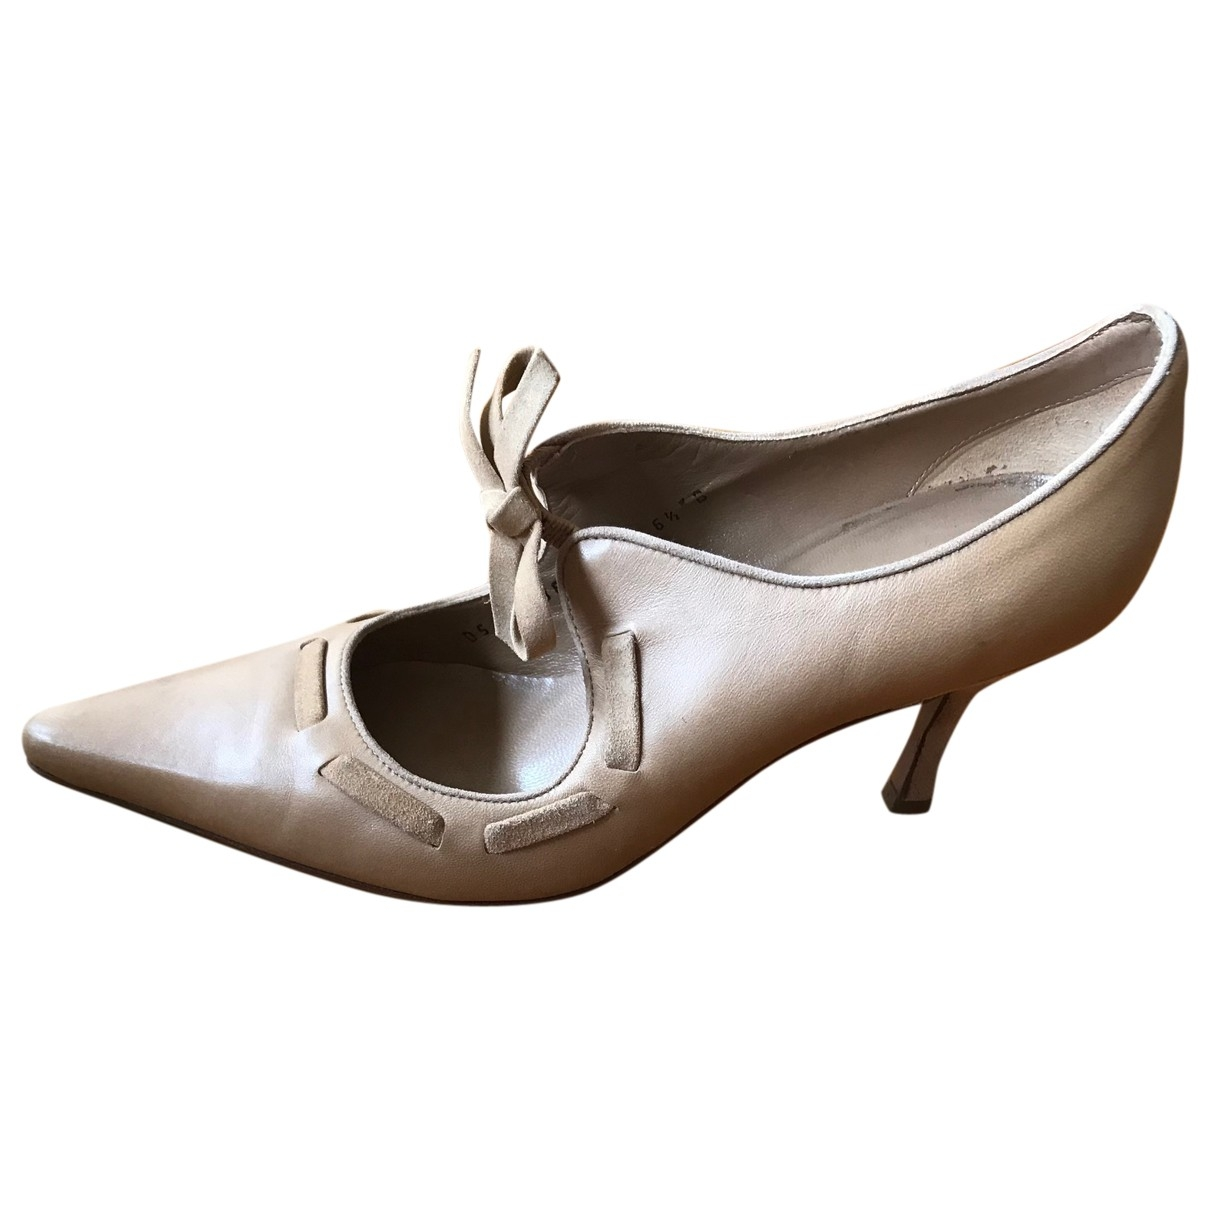 Salvatore Ferragamo \N Camel Leather Heels for Women 36.5 EU